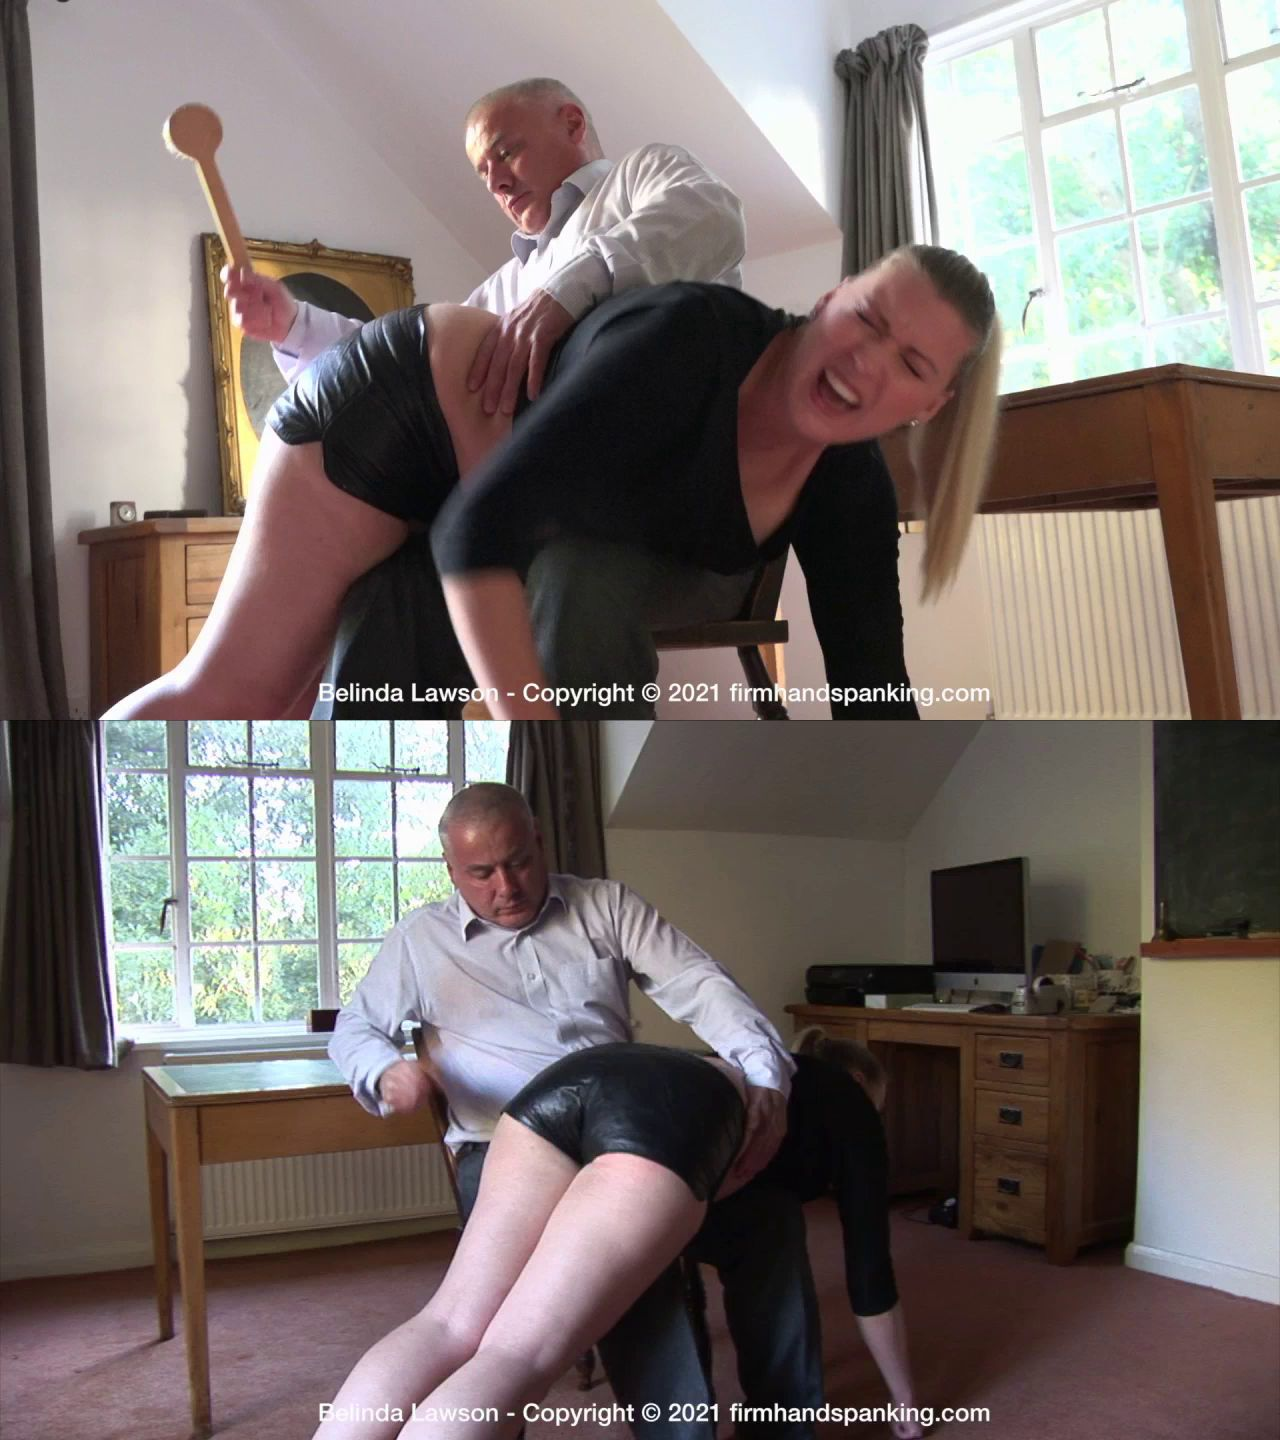 Firm Hand Spanking – MP4/HD – Belinda Lawson – Leather Princess (Release date: May 14, 2021)